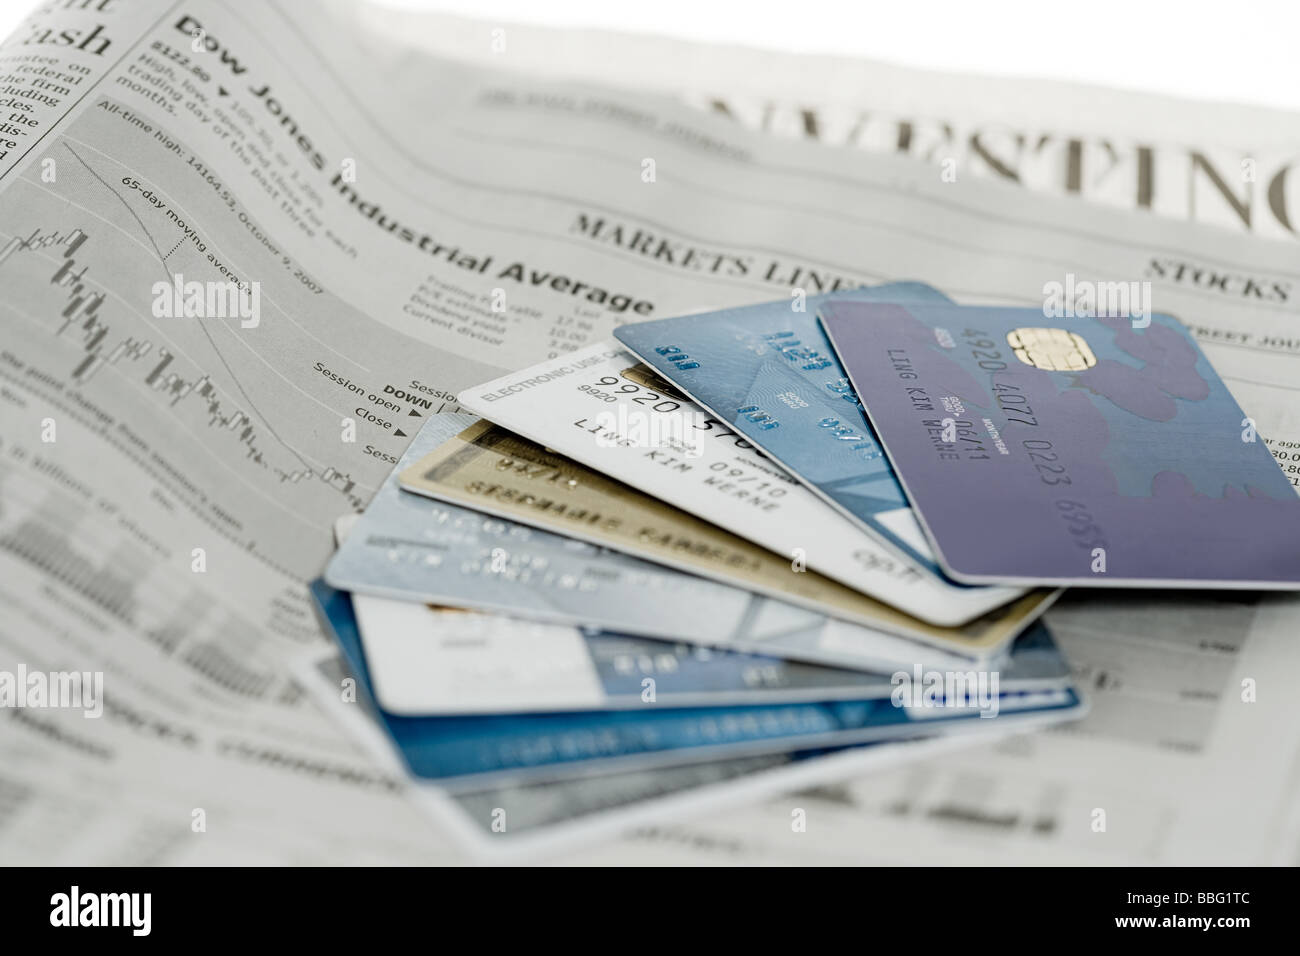 Business Cards Exchange Stock Photos & Business Cards Exchange Stock ...